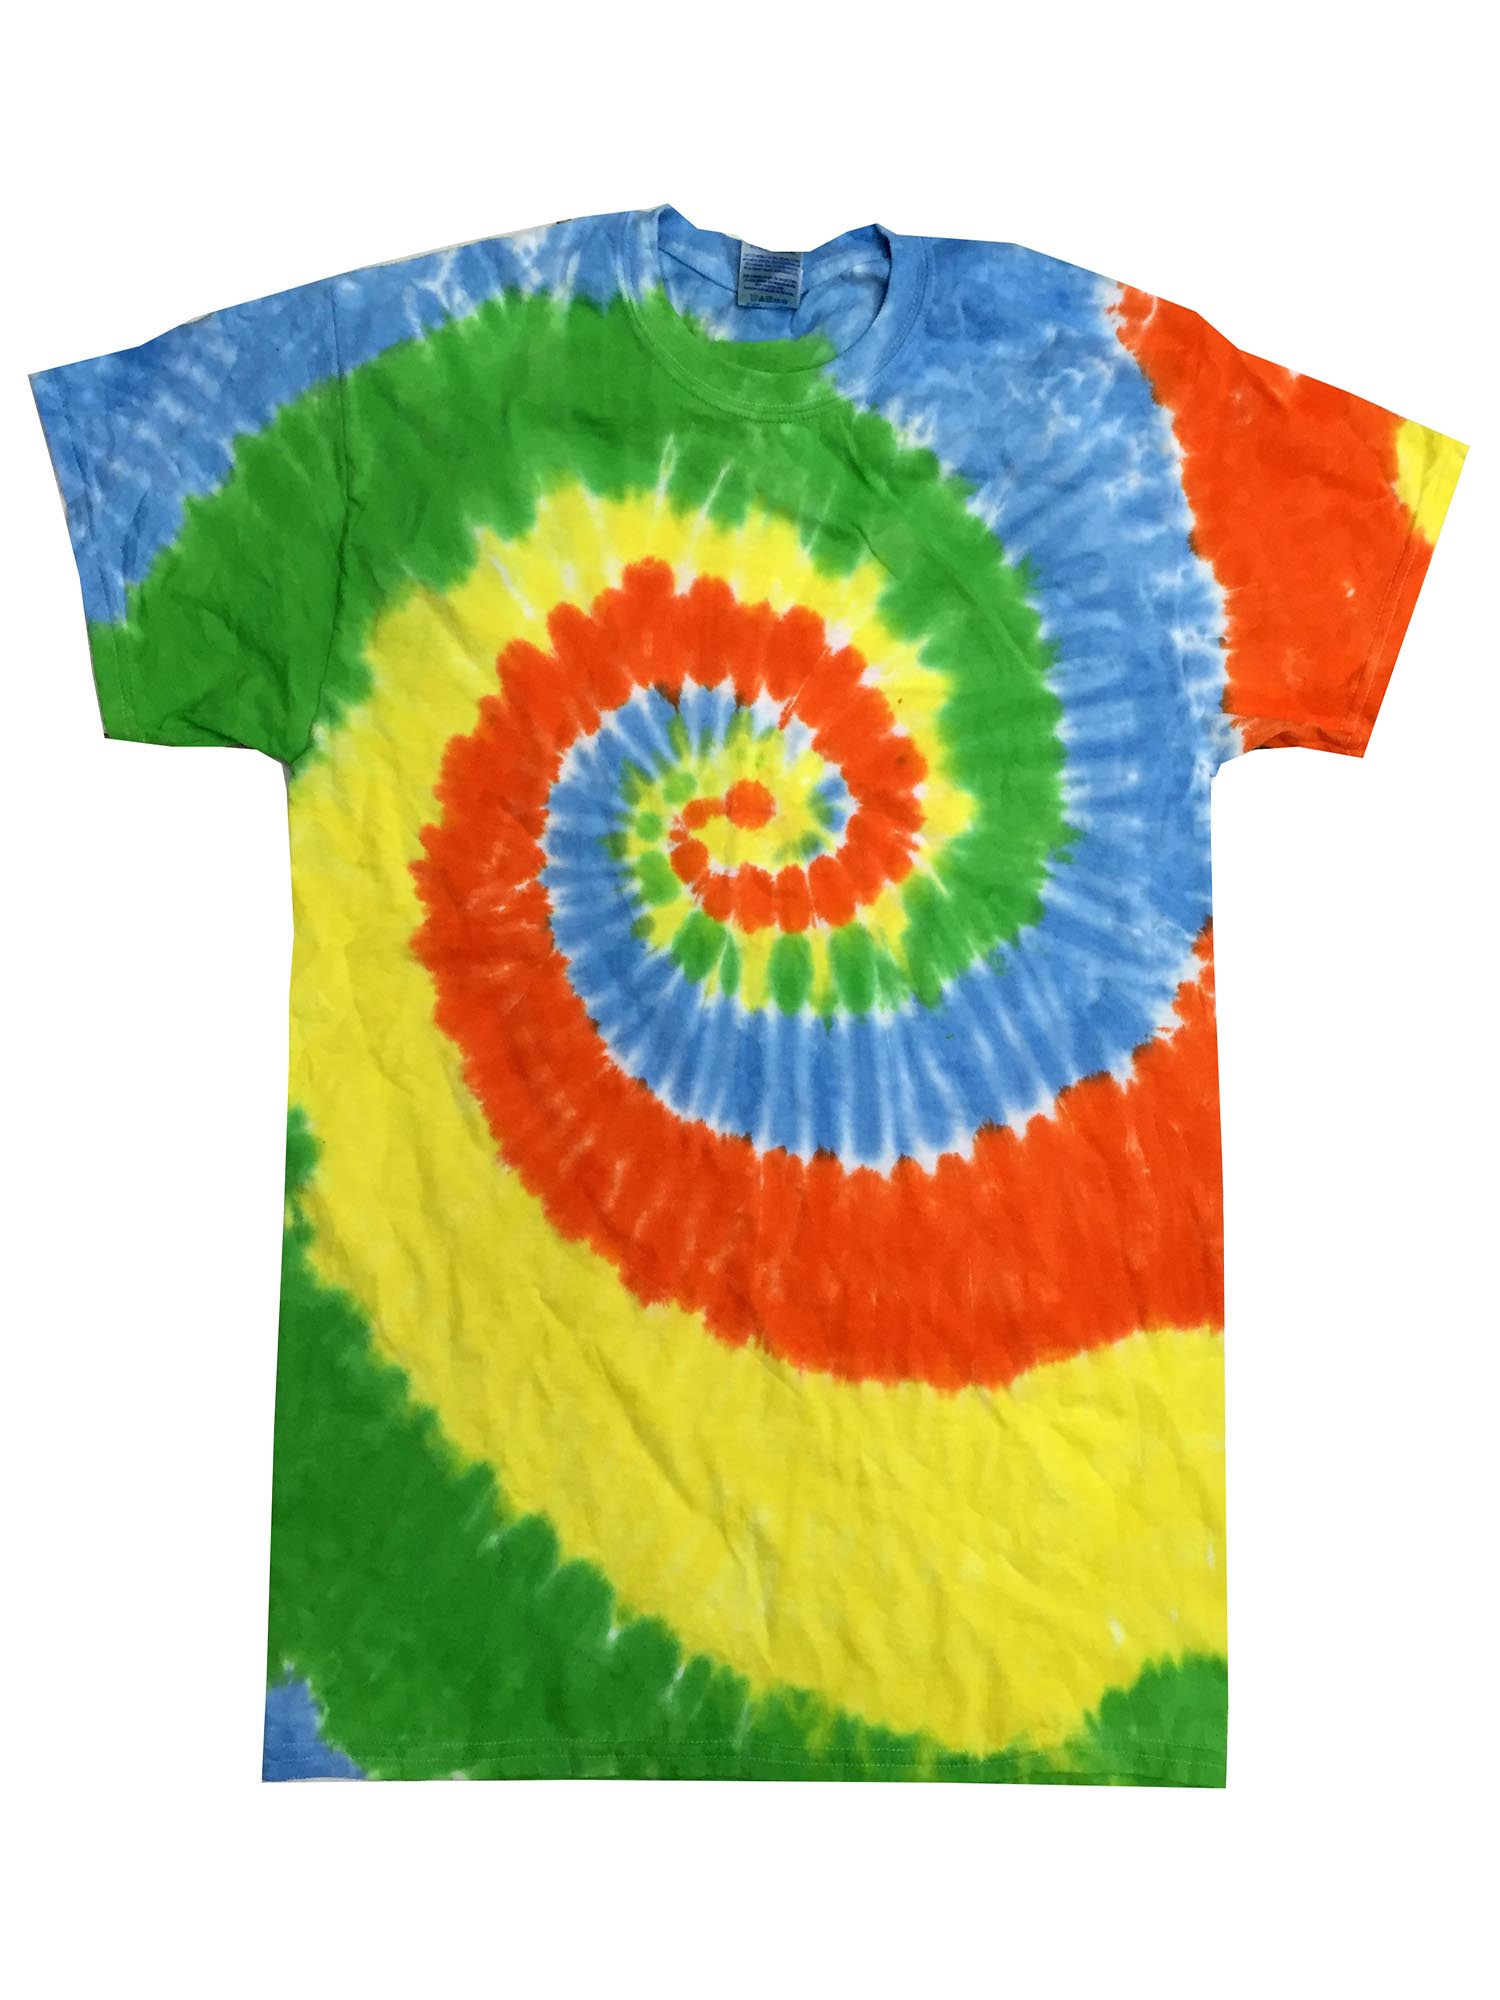 Colortone Childrens Unisex Tie Dye Short Sleeve Cotton T-Shirt RW2624